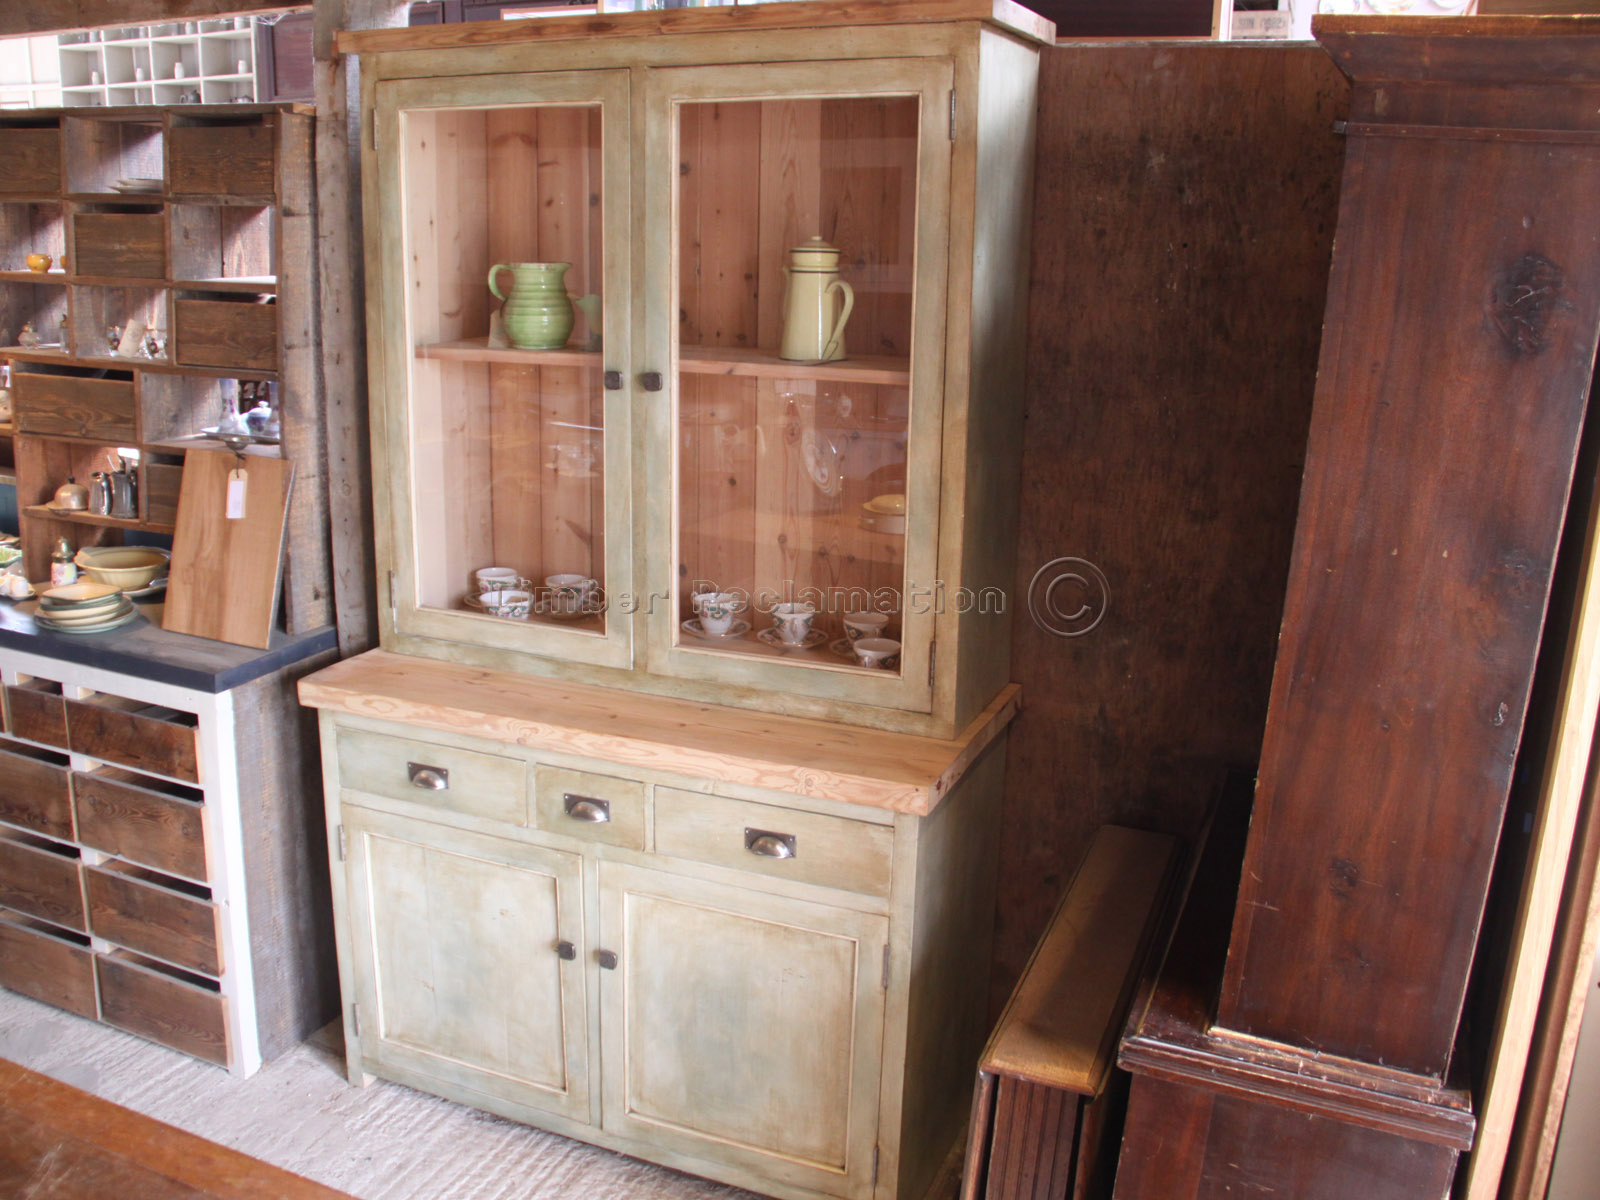 kitchen dresser hotels with kitchens in rooms bespoke furniture from reclaimed timber free standing